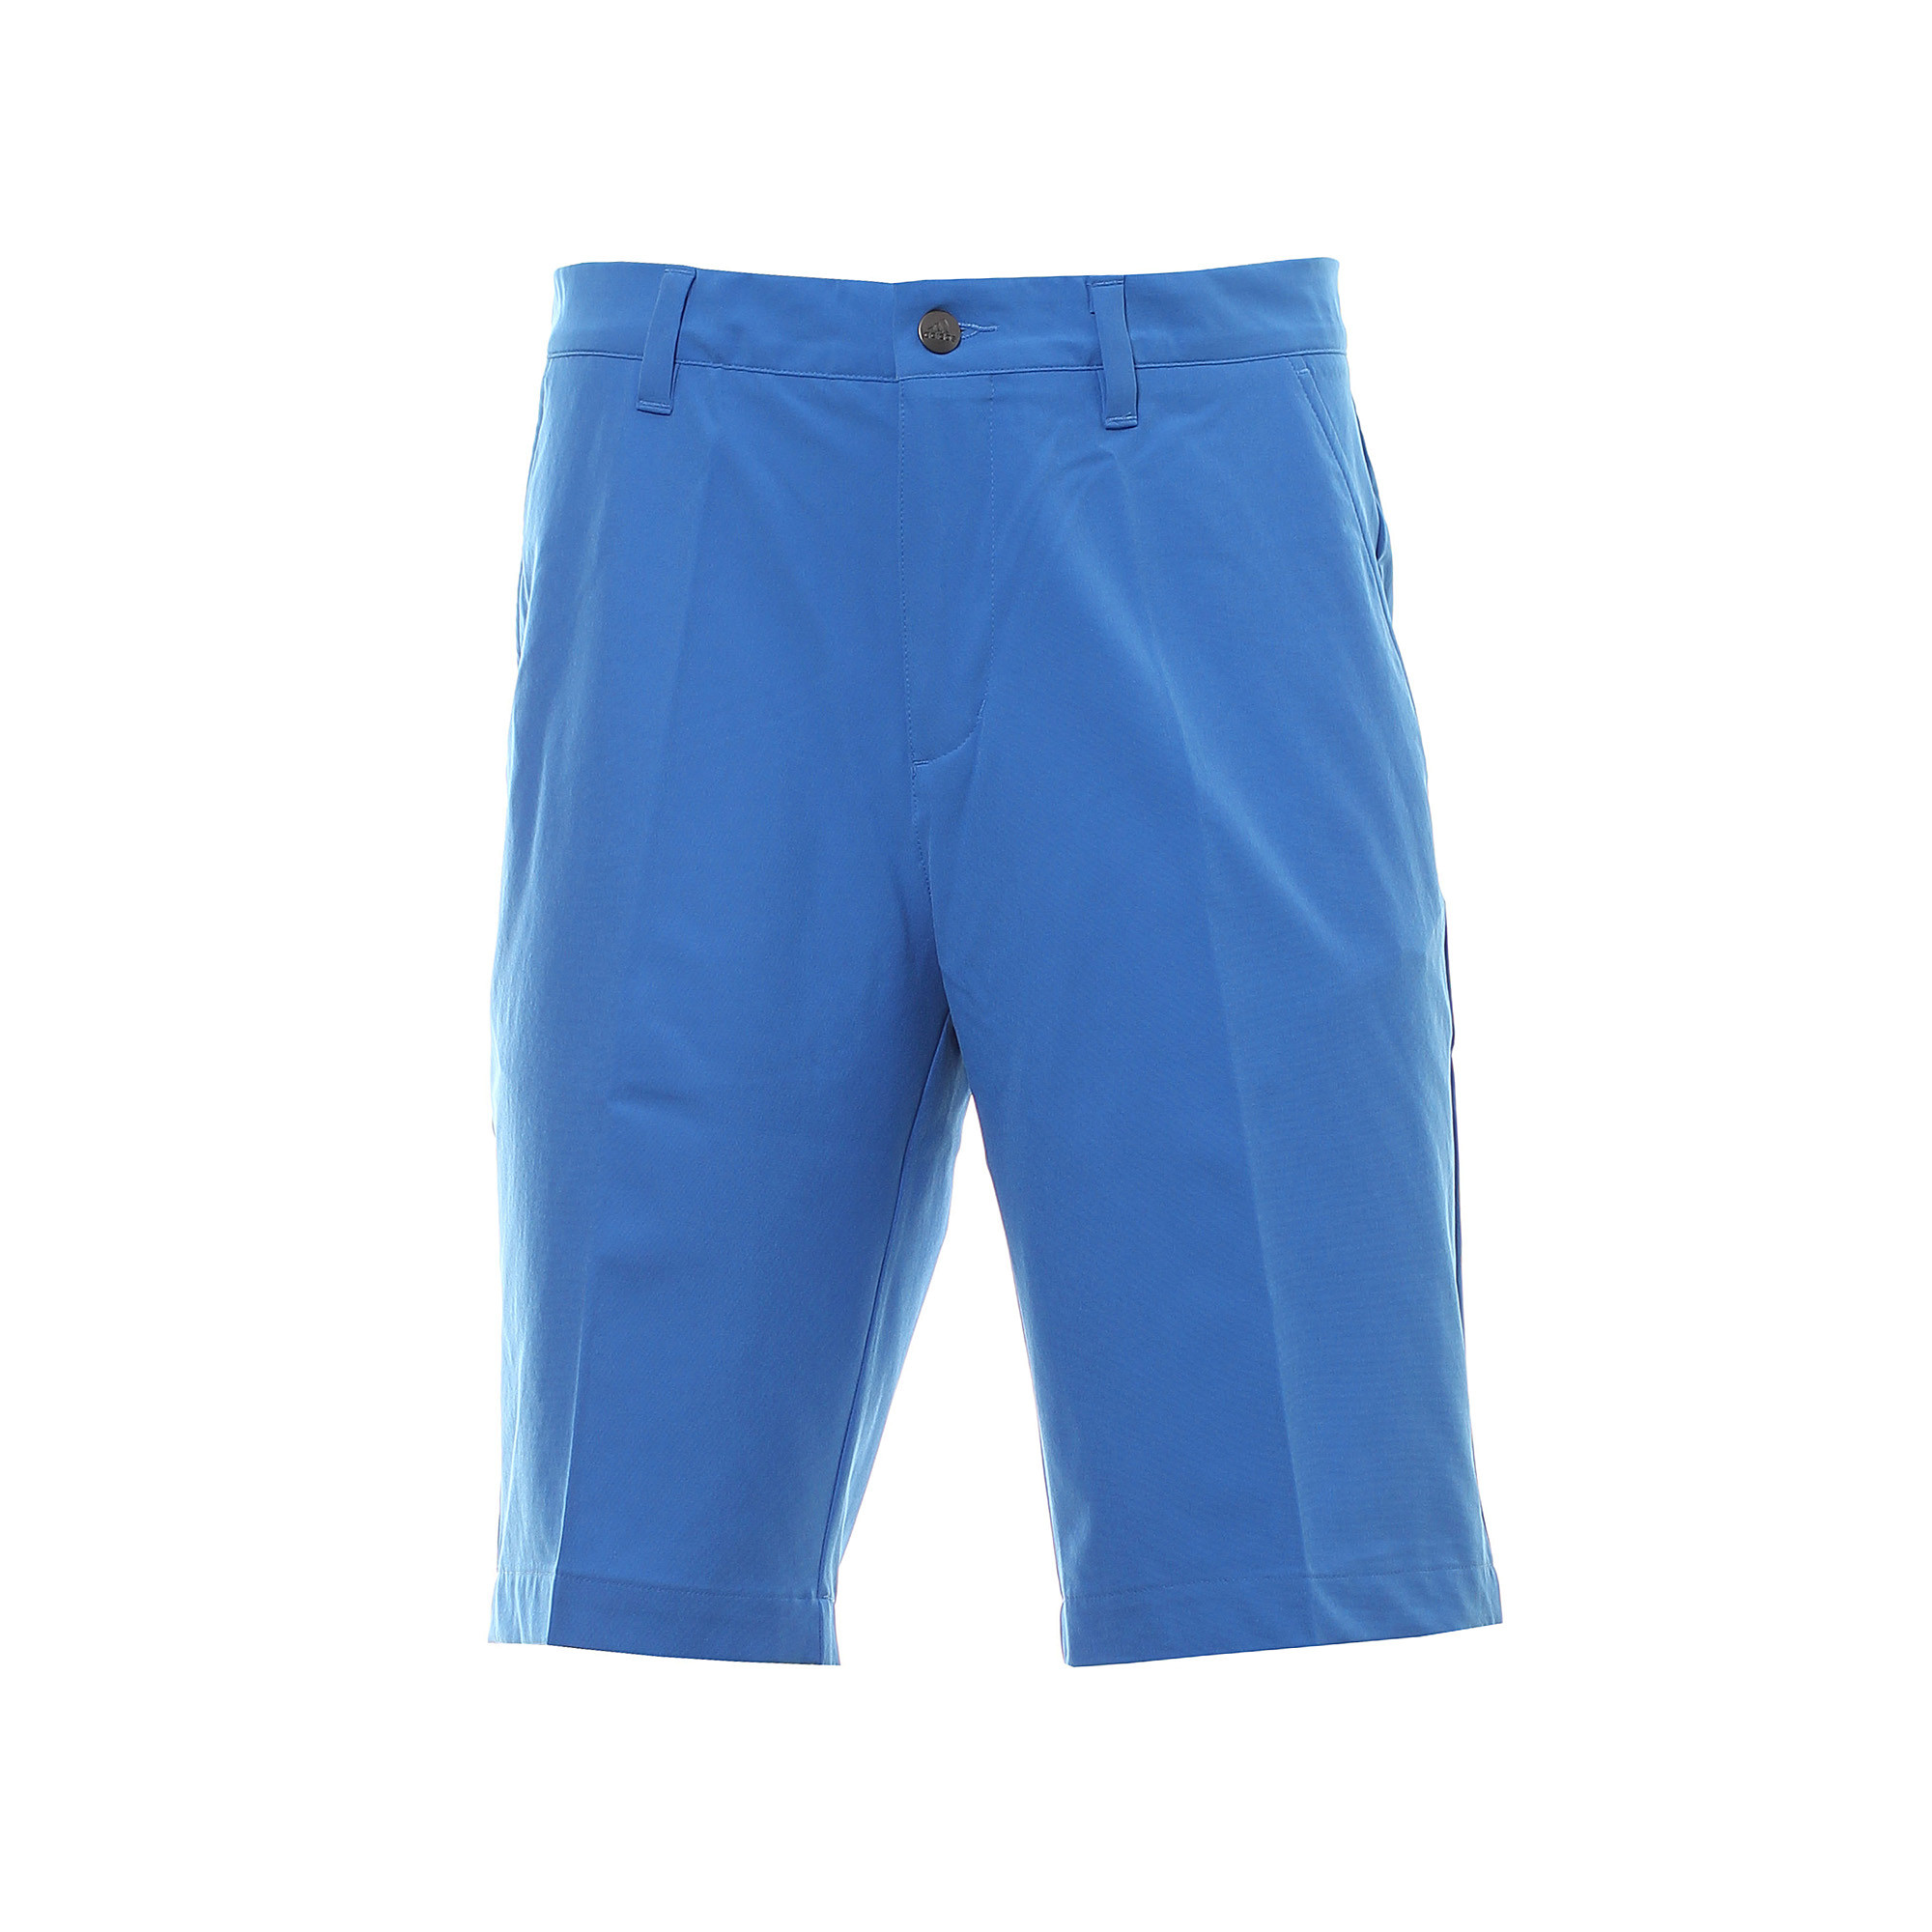 Adidas Men's Ultimate365 Blue Shorts